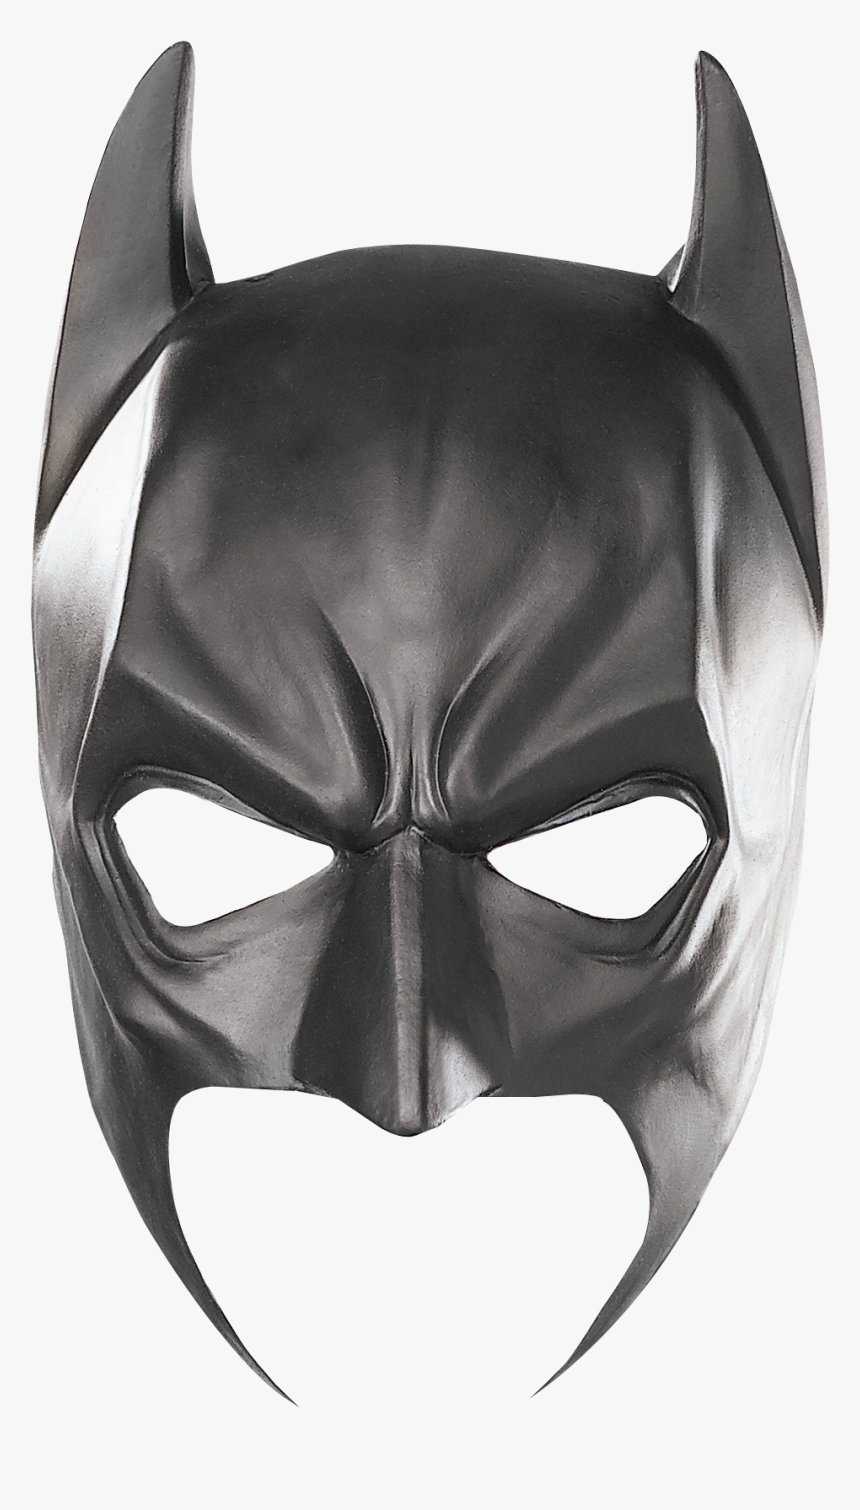 Batman Mask Png Transparent Images - Batman Mask Art, Png Download, Free Download